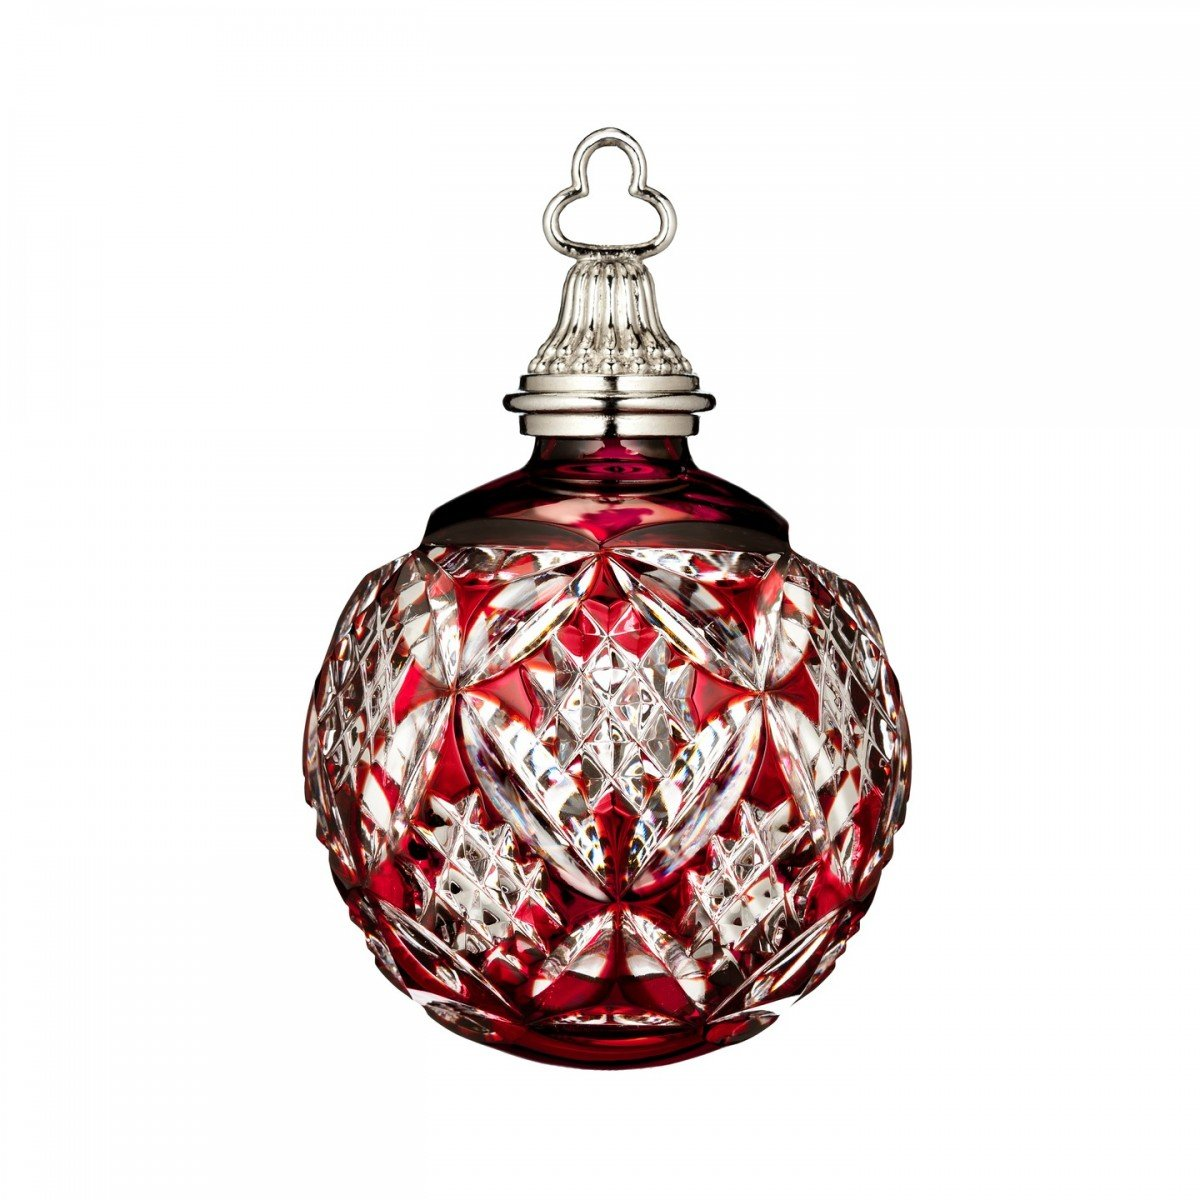 waterford crystal christmas tree ornaments  Rainforest Islands Ferry